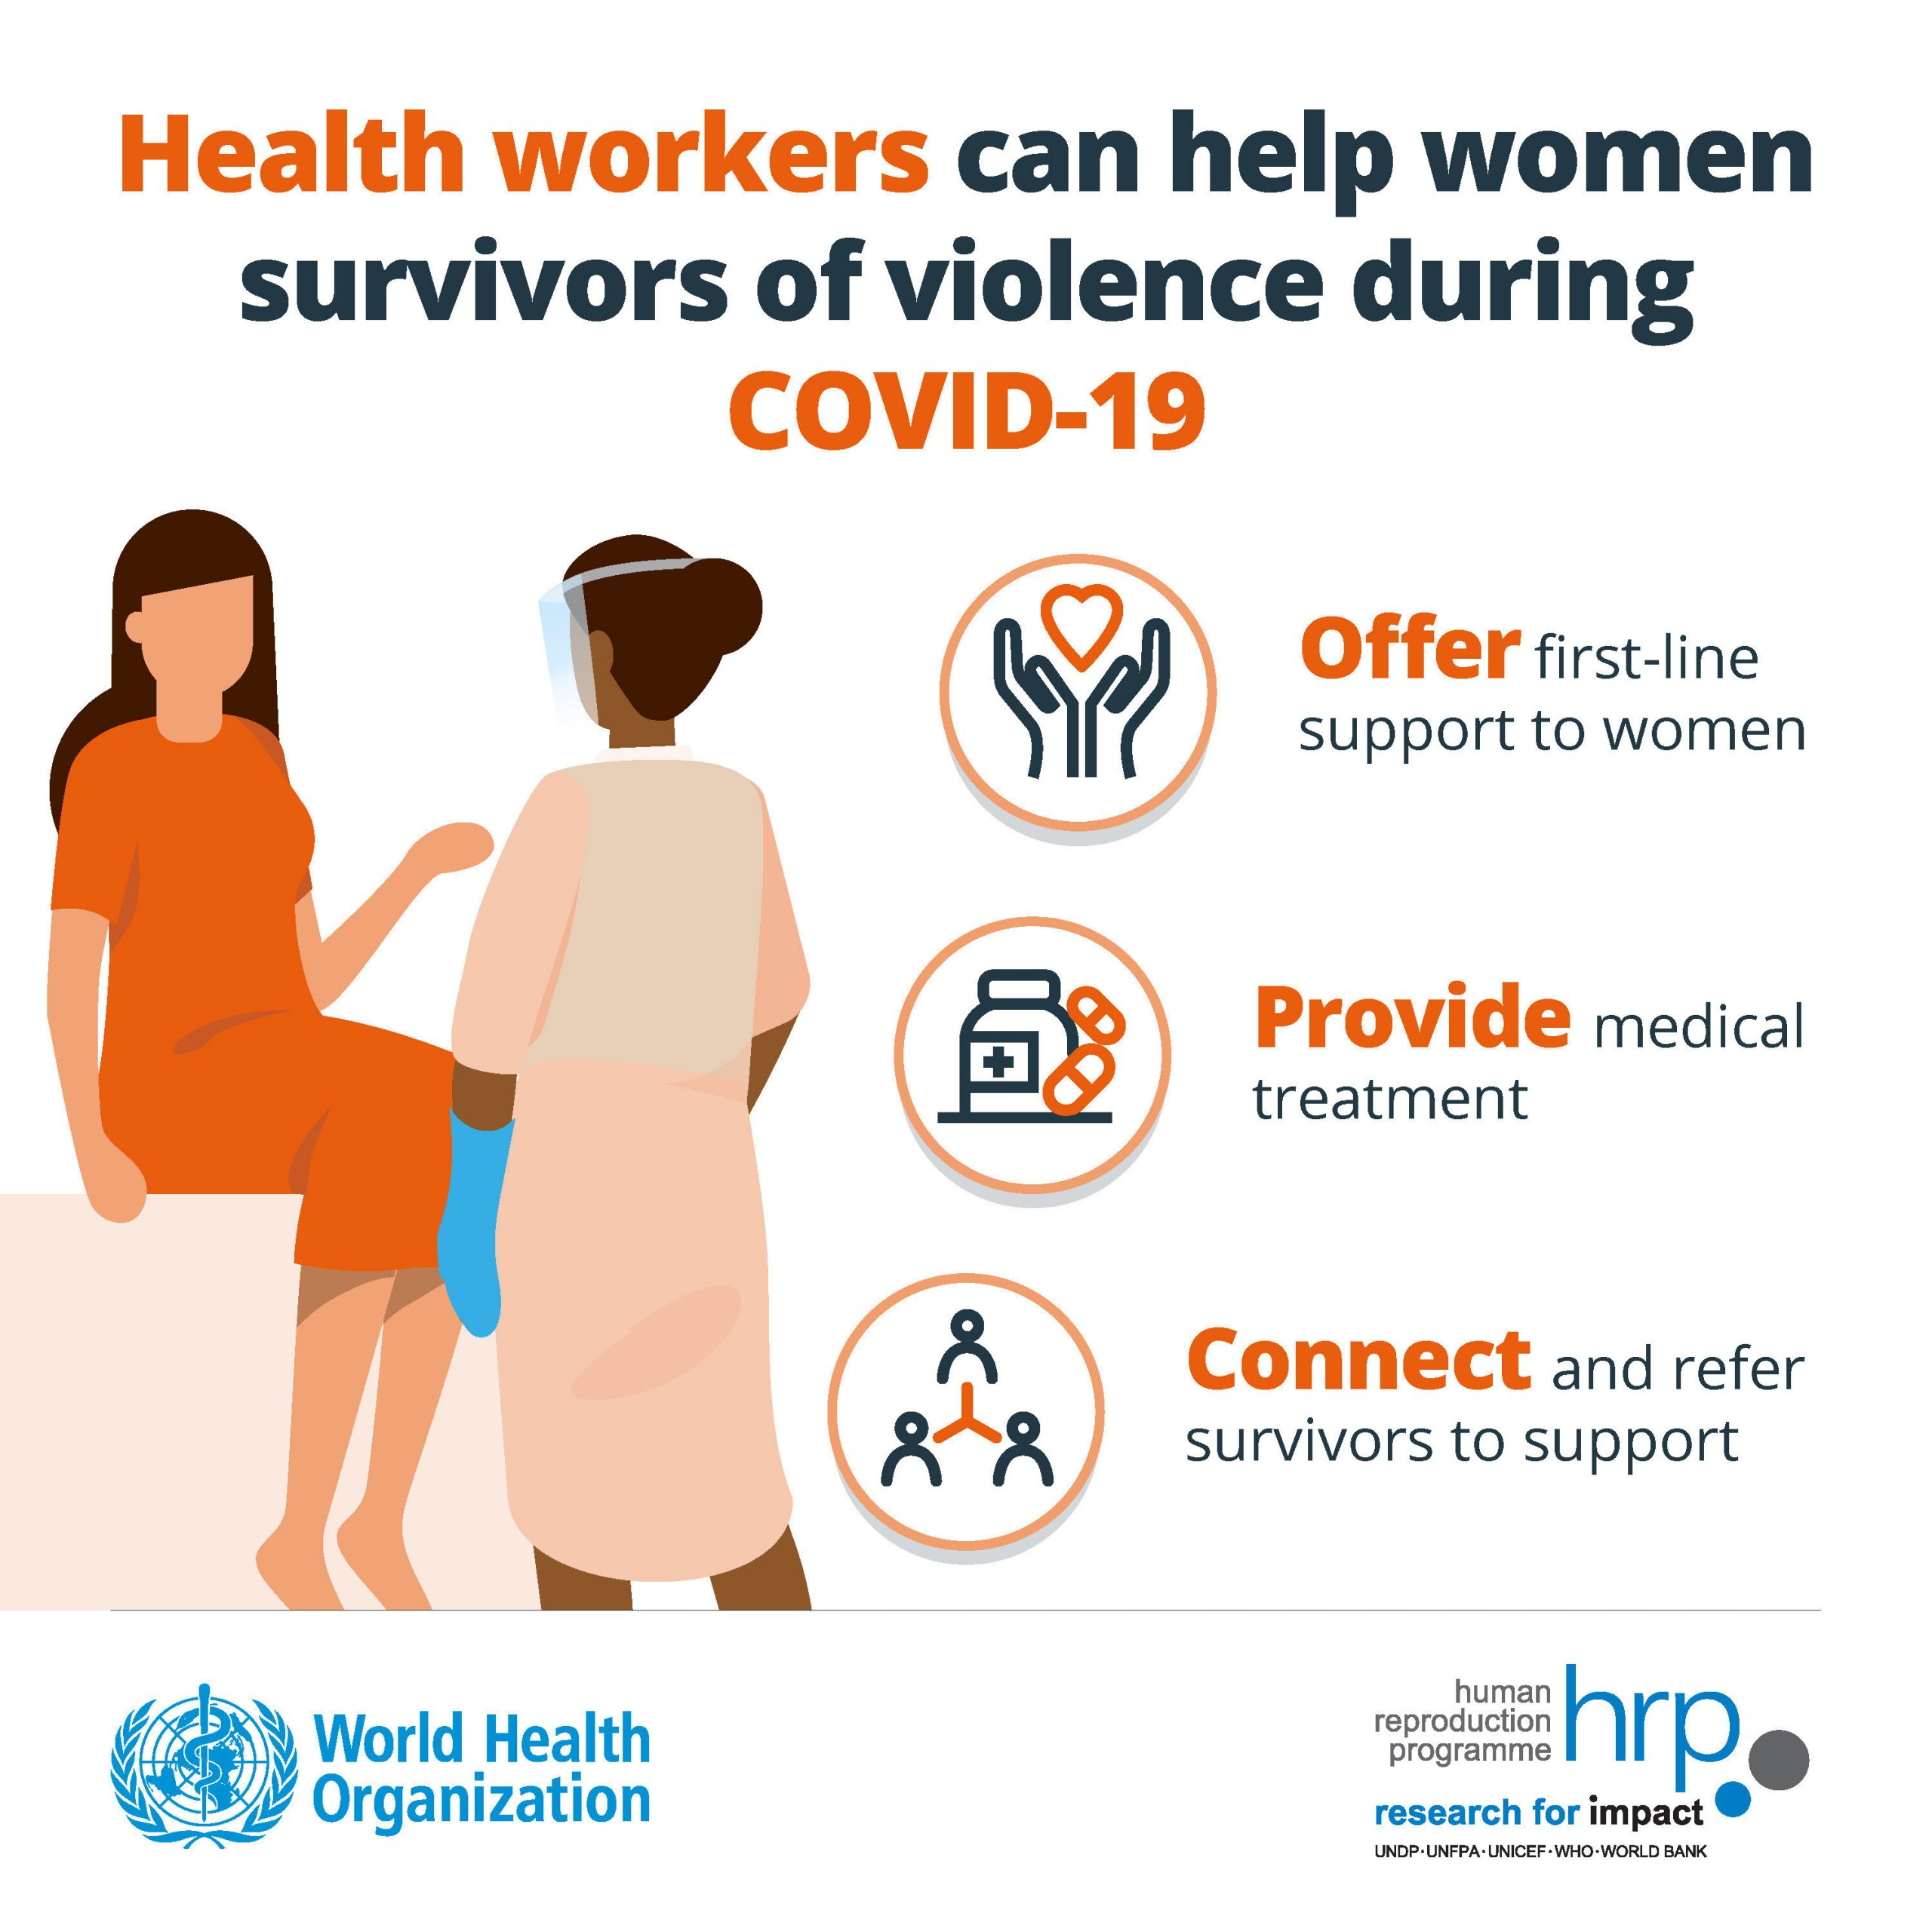 How healthcare workers can help women victims of violence during Covid-19